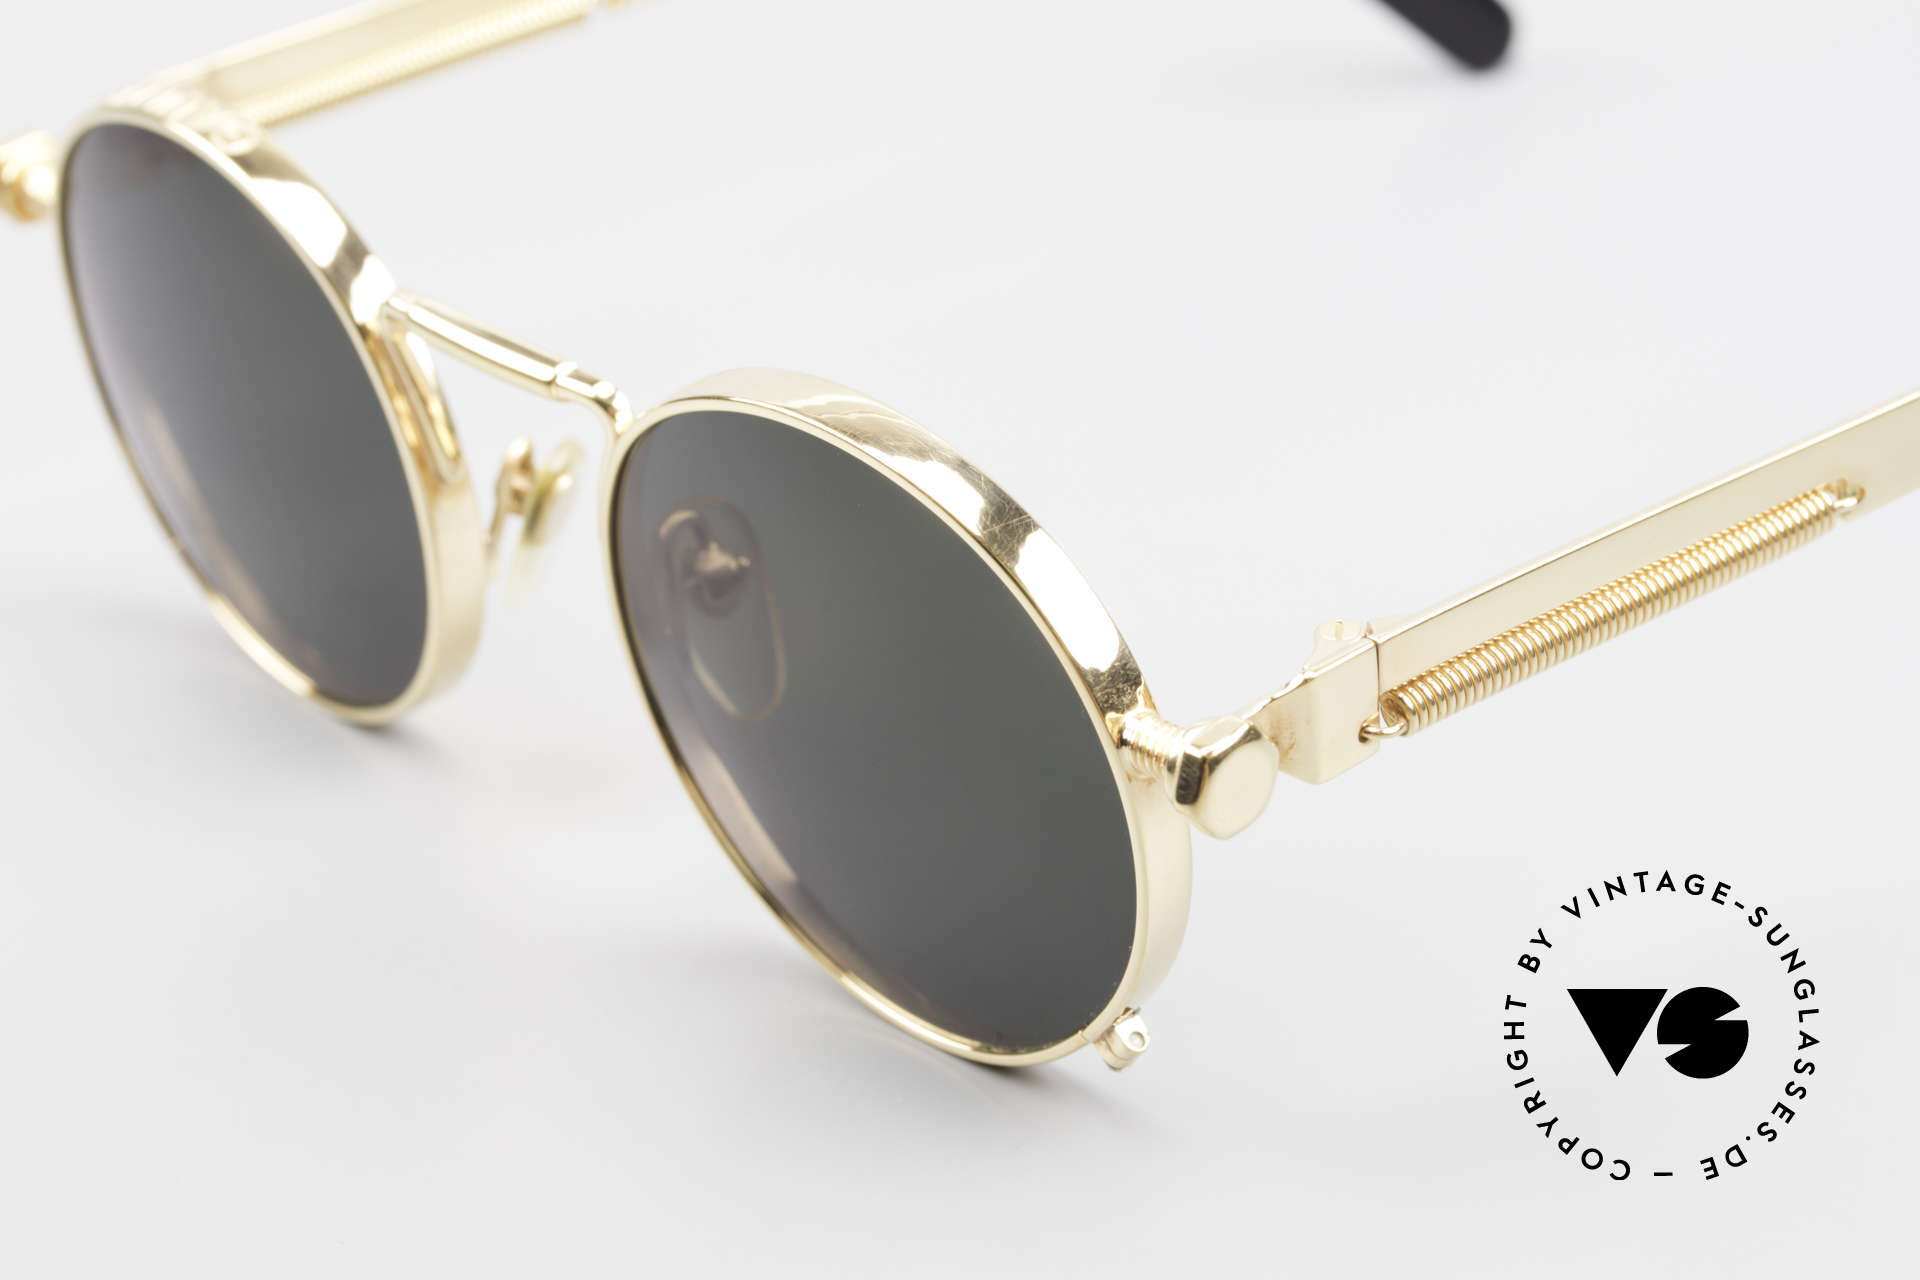 Jean Paul Gaultier 56-8171 Customized Chrome Gold, the most wanted Gaultier vintage sunglasses, worldwide, Made for Men and Women